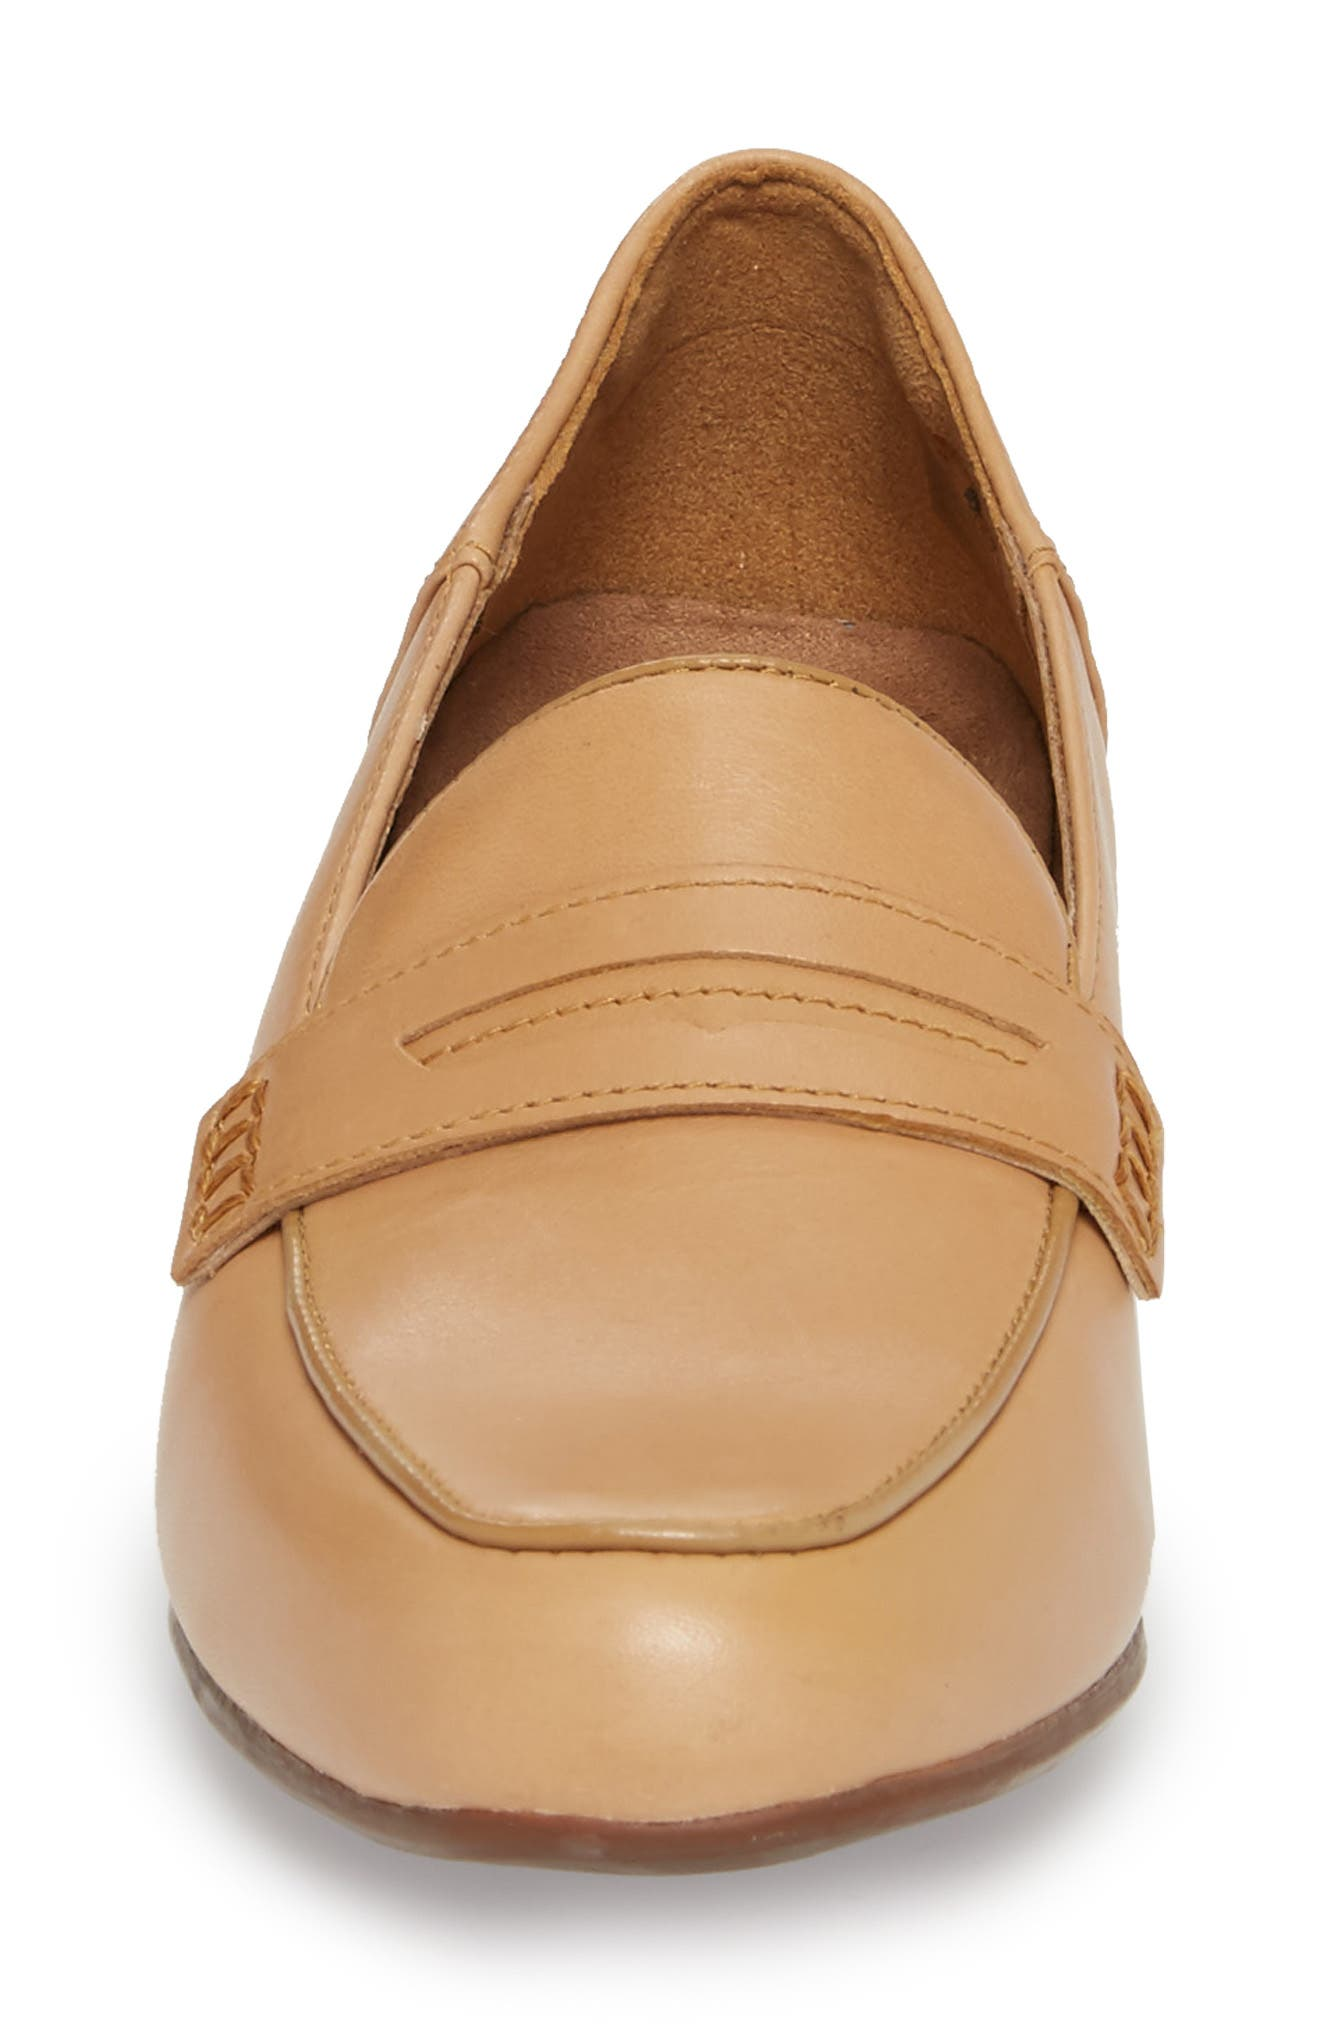 Keesha Cora Penny Loafer,                             Alternate thumbnail 4, color,                             Light Tan Leather